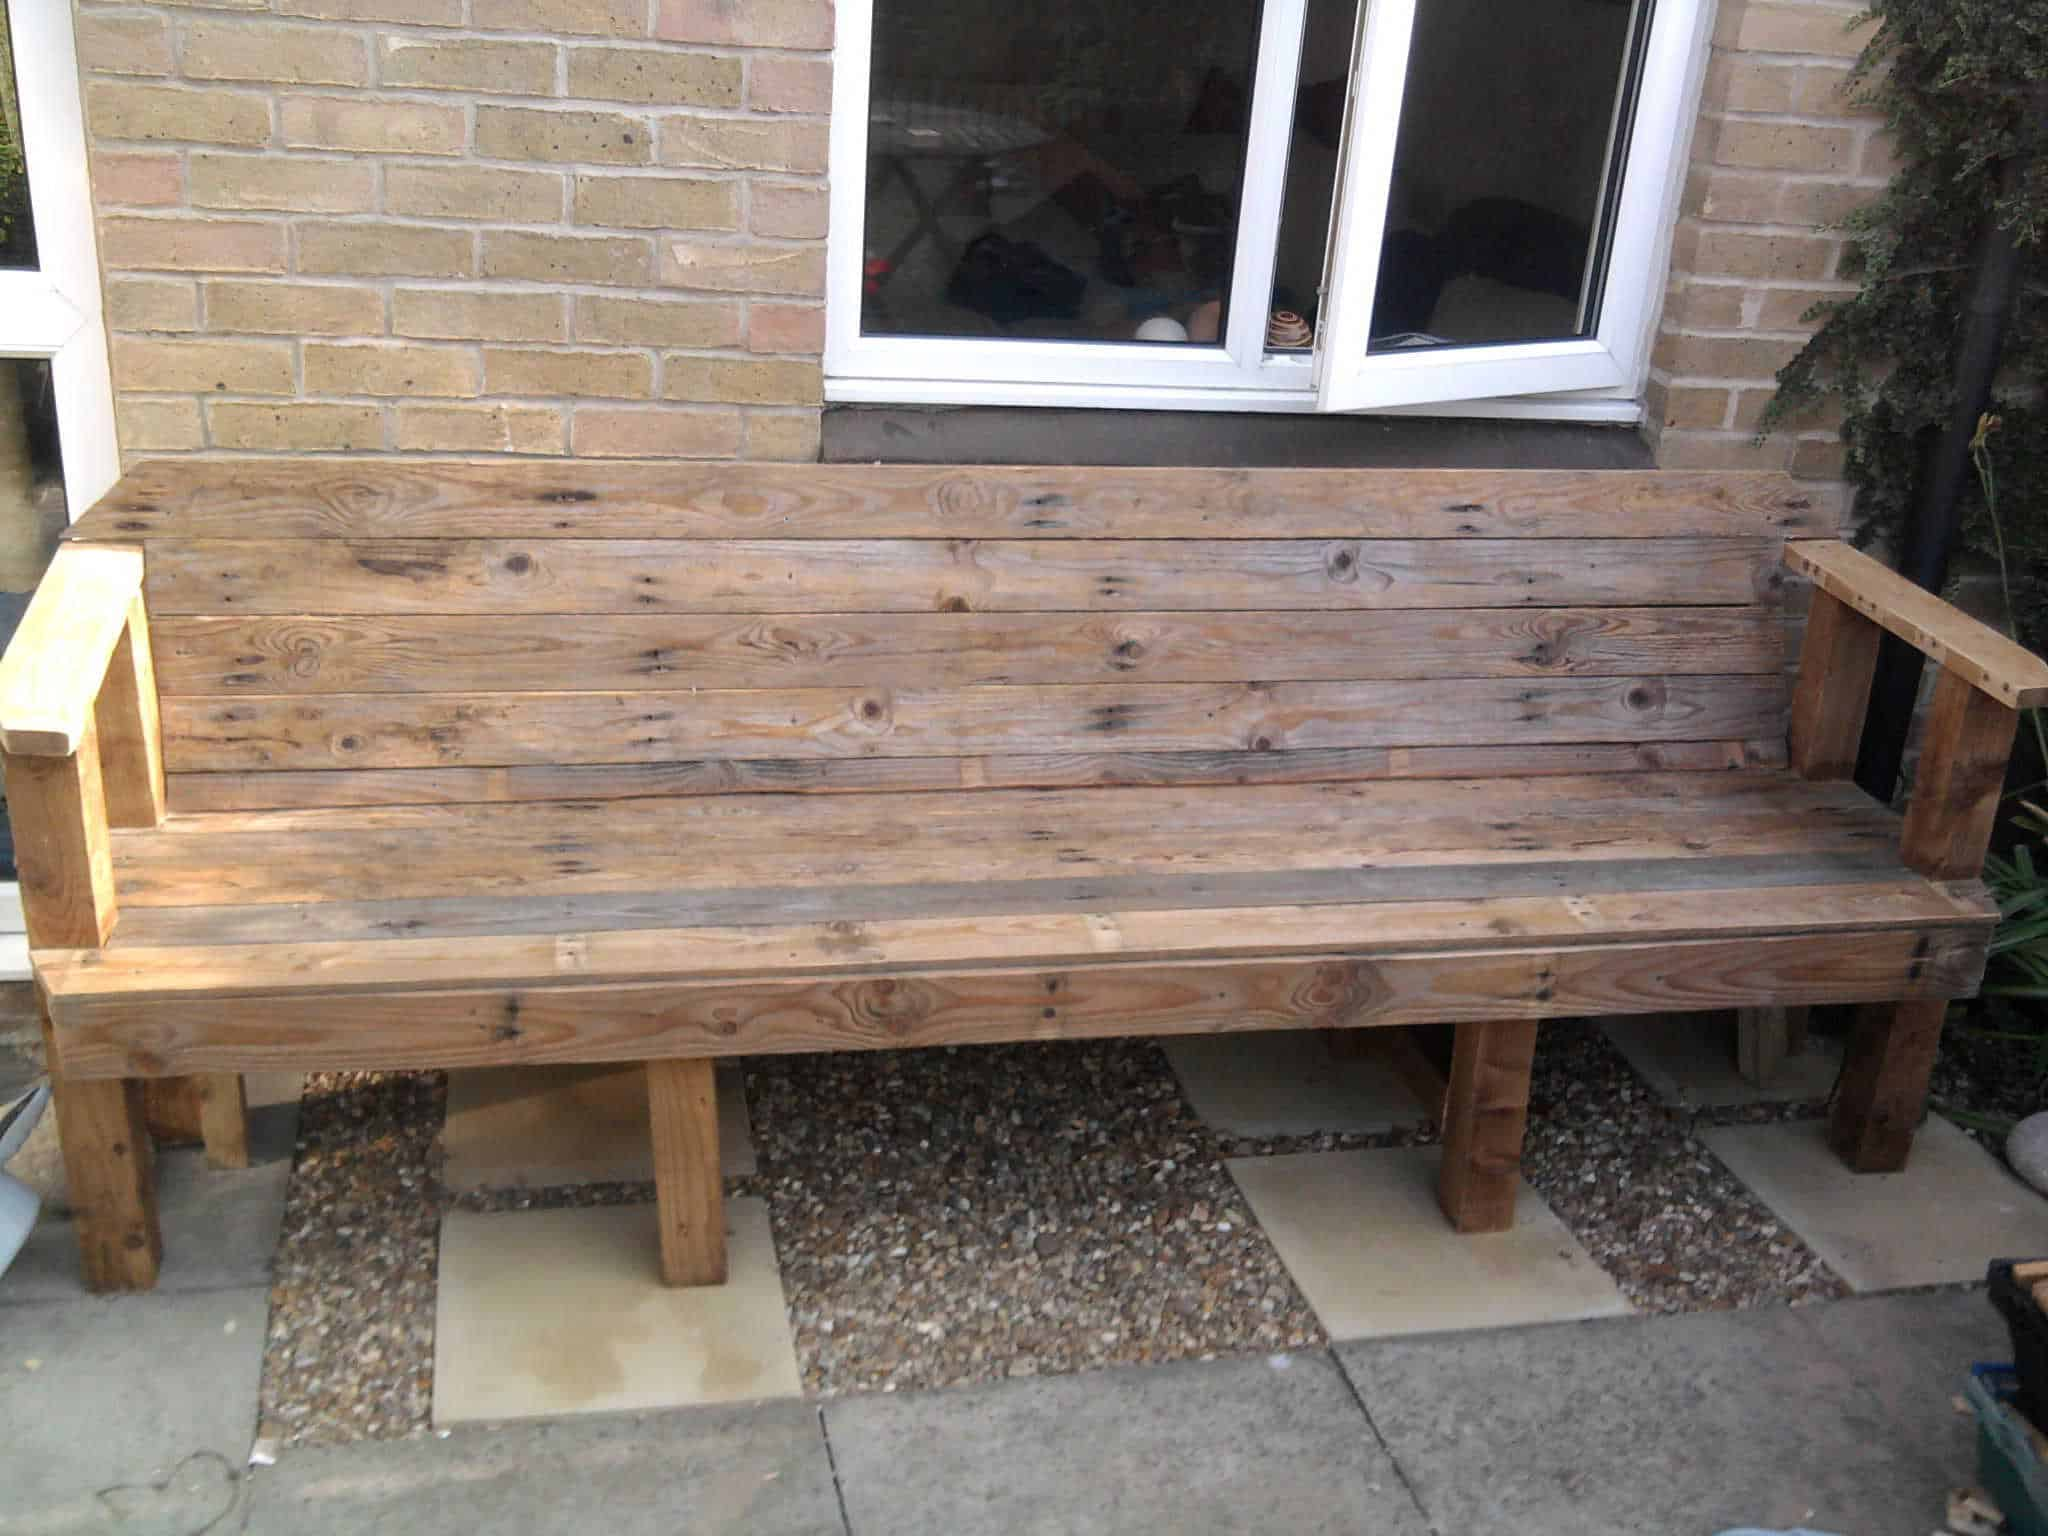 Patio From Pallets Upcycled Pallet Into Patio Bench O Pallet Ideas O 1001 Pallets